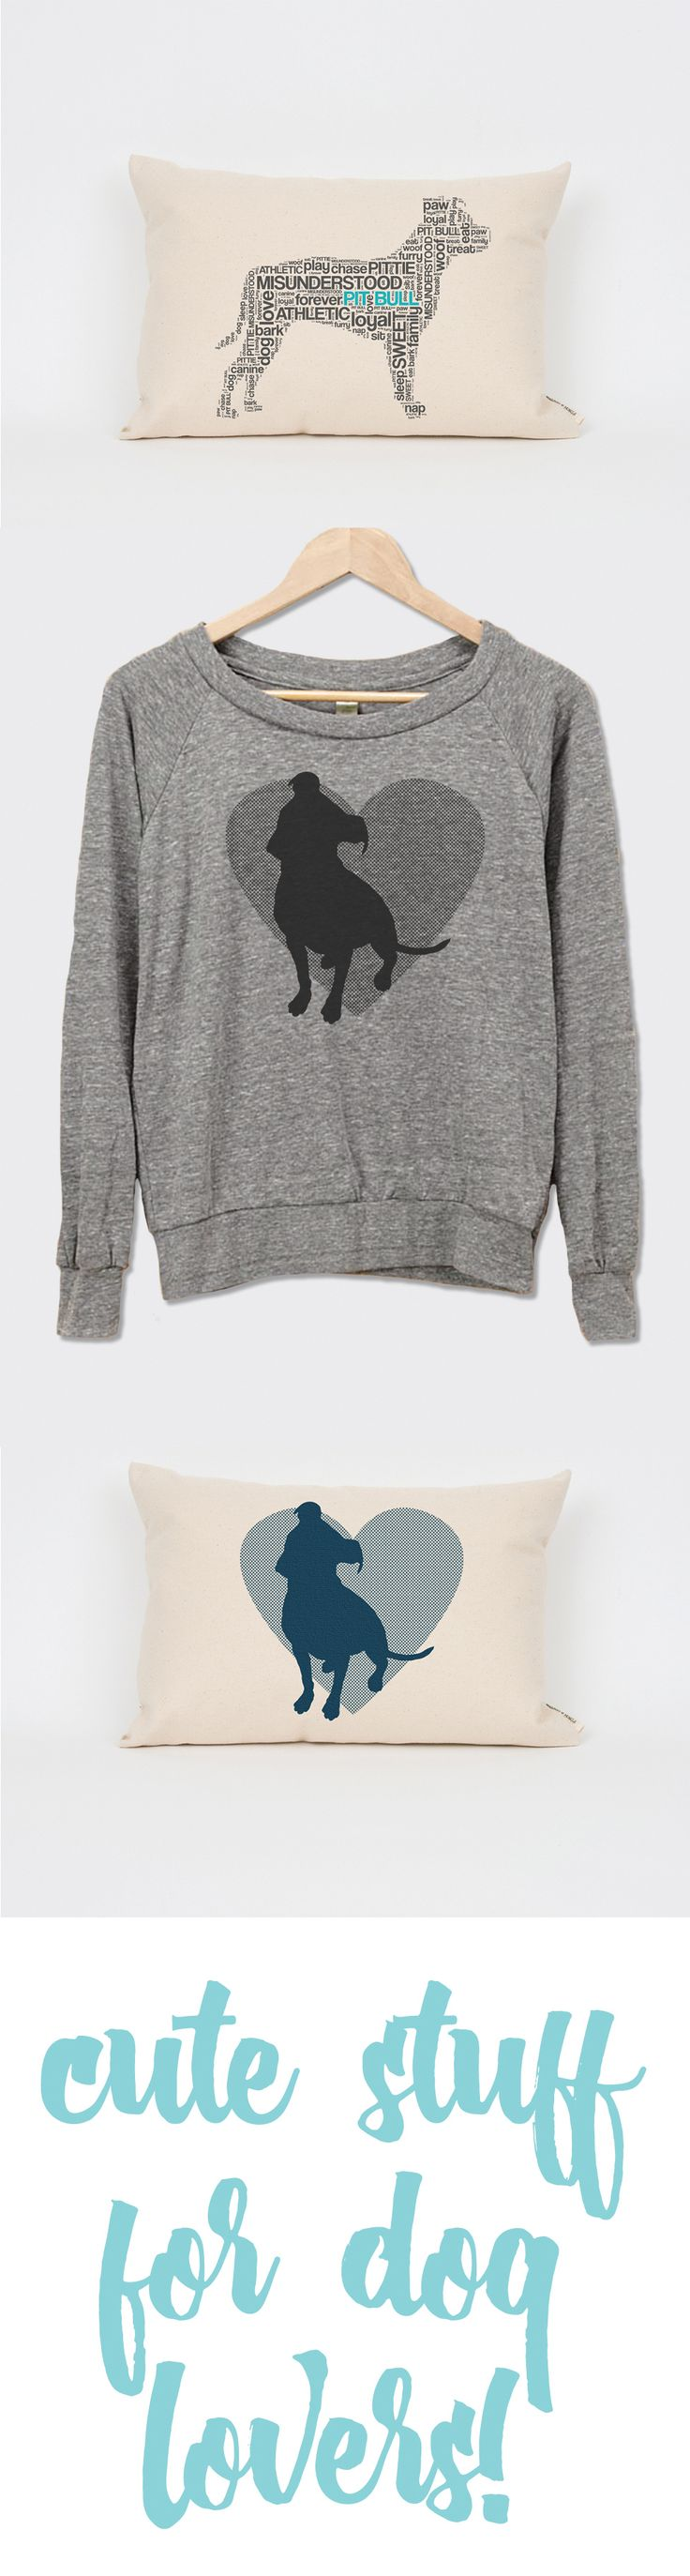 Show your pit bull love with cute stuff from Dog City & Co!